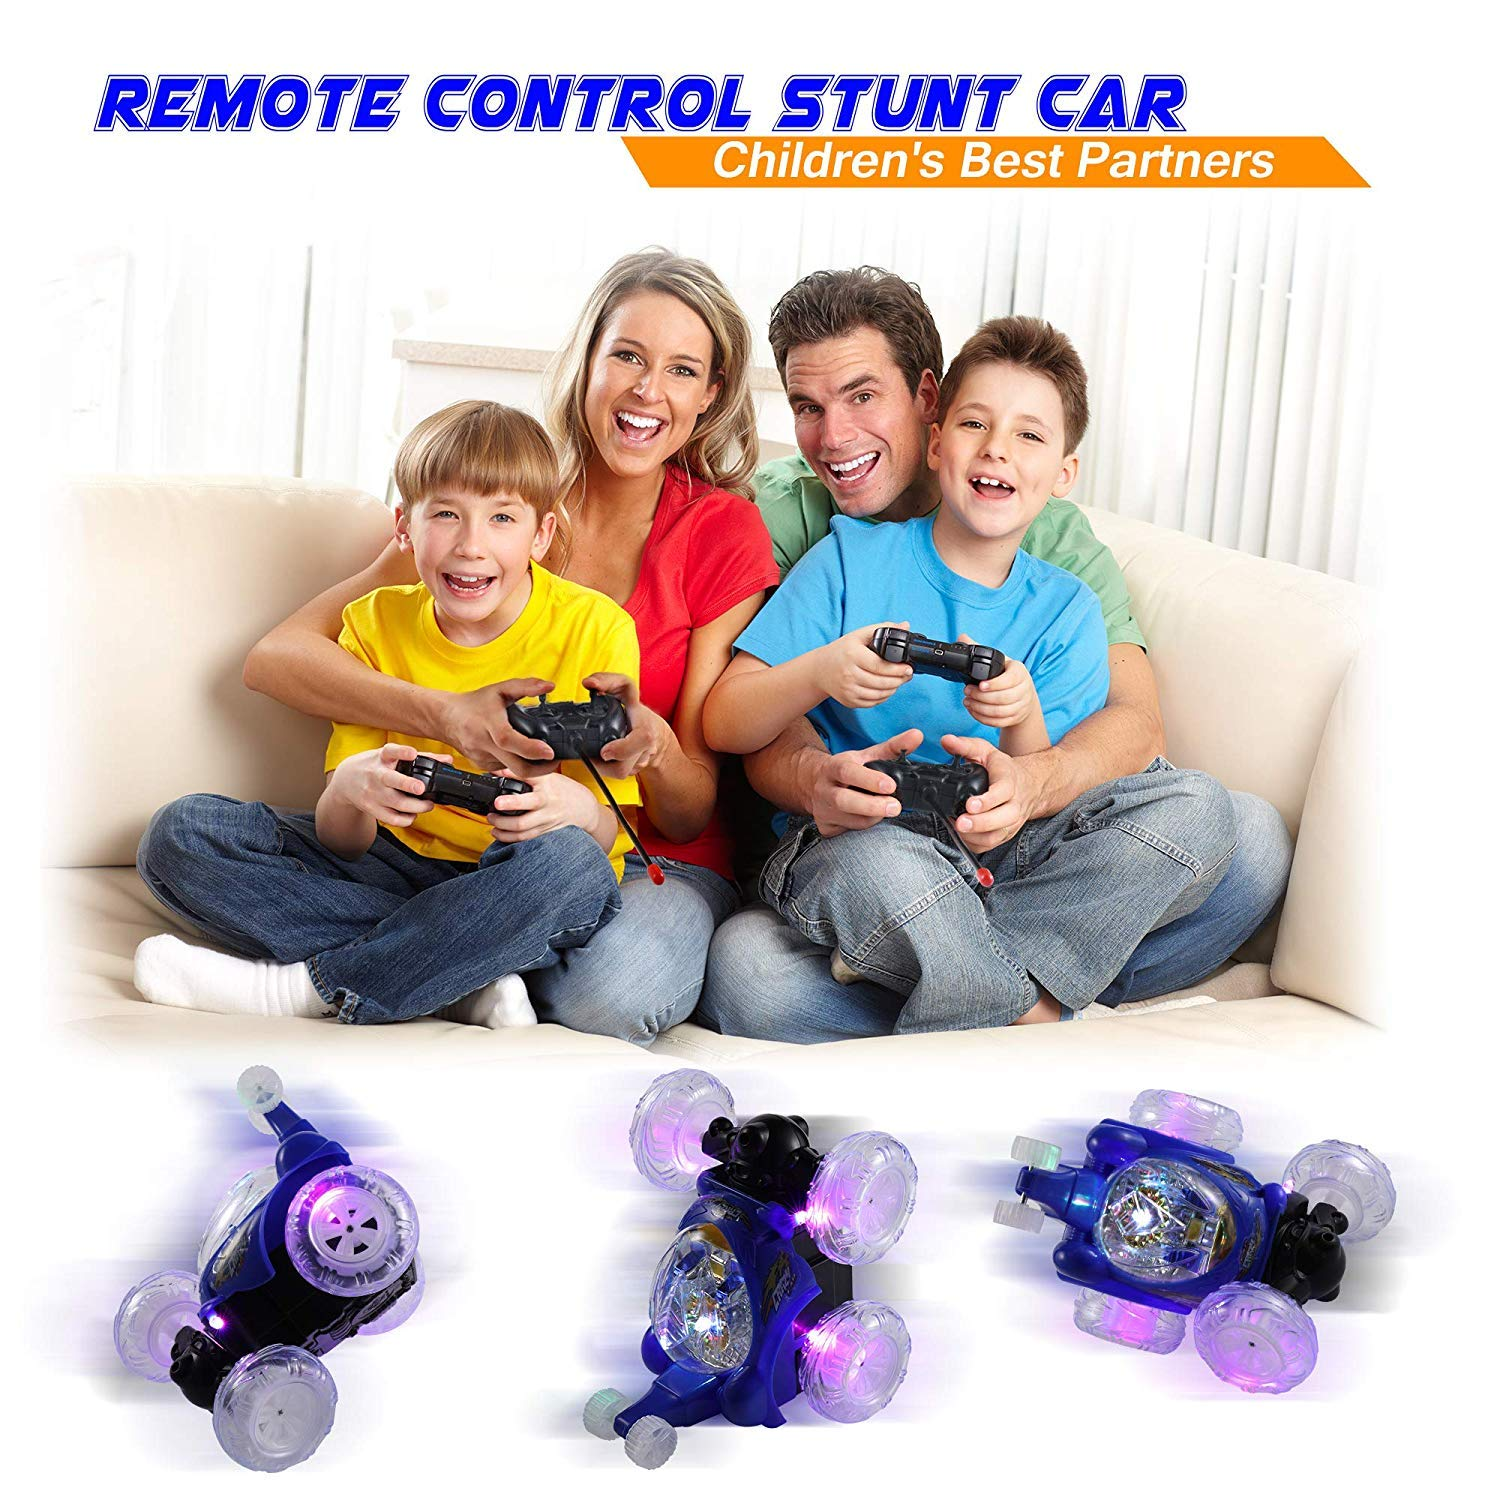 UTTORA Remote Control Car, Invincible Tornado Twister Remote Control Truck,360 Degree Spinning and Flips with Color Flash & Music for Kids (Camouflage Color)